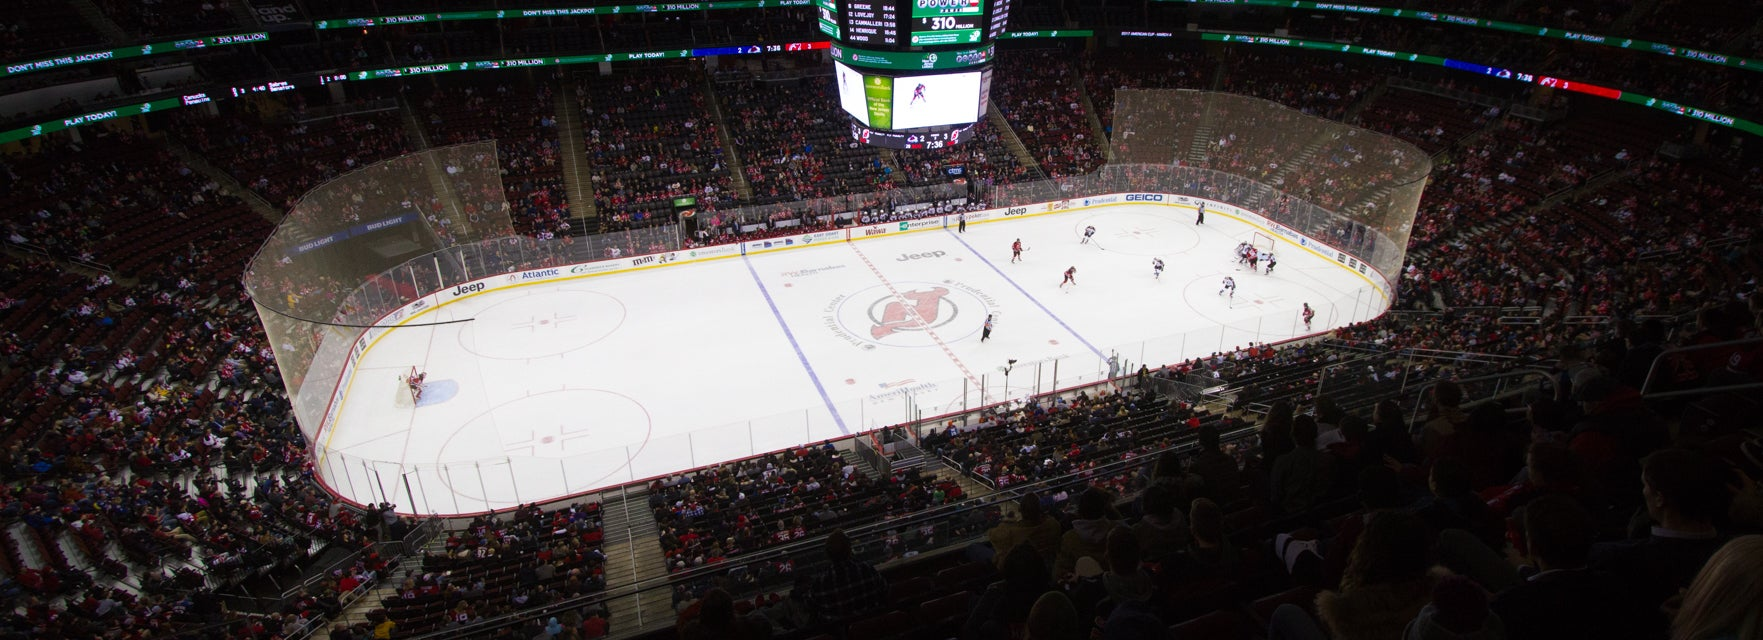 Seat view from Mezzanine Sideline